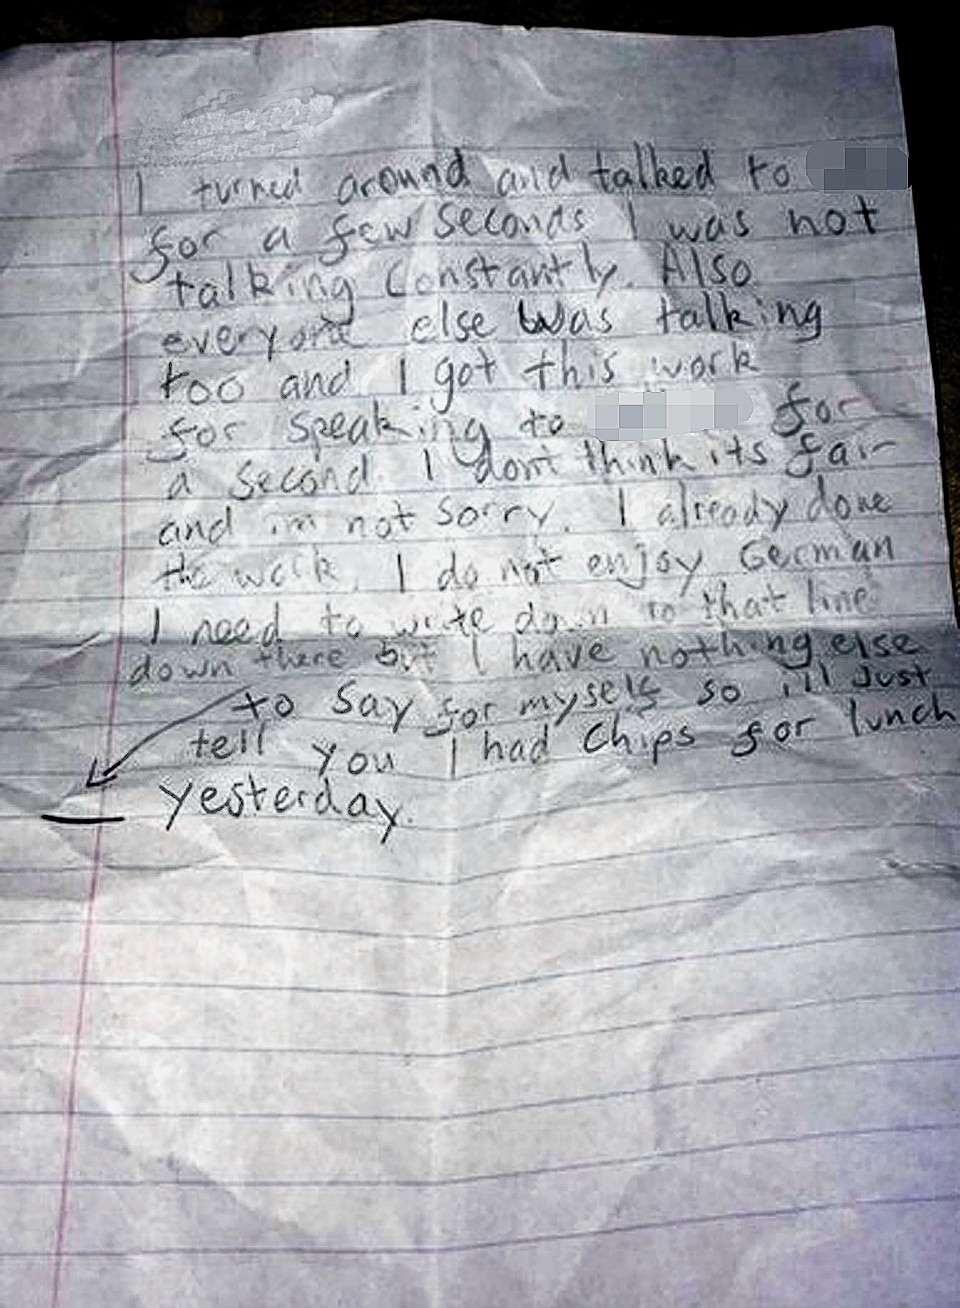 The picture shows the letter a north-east schoolboy wrote to his teacher